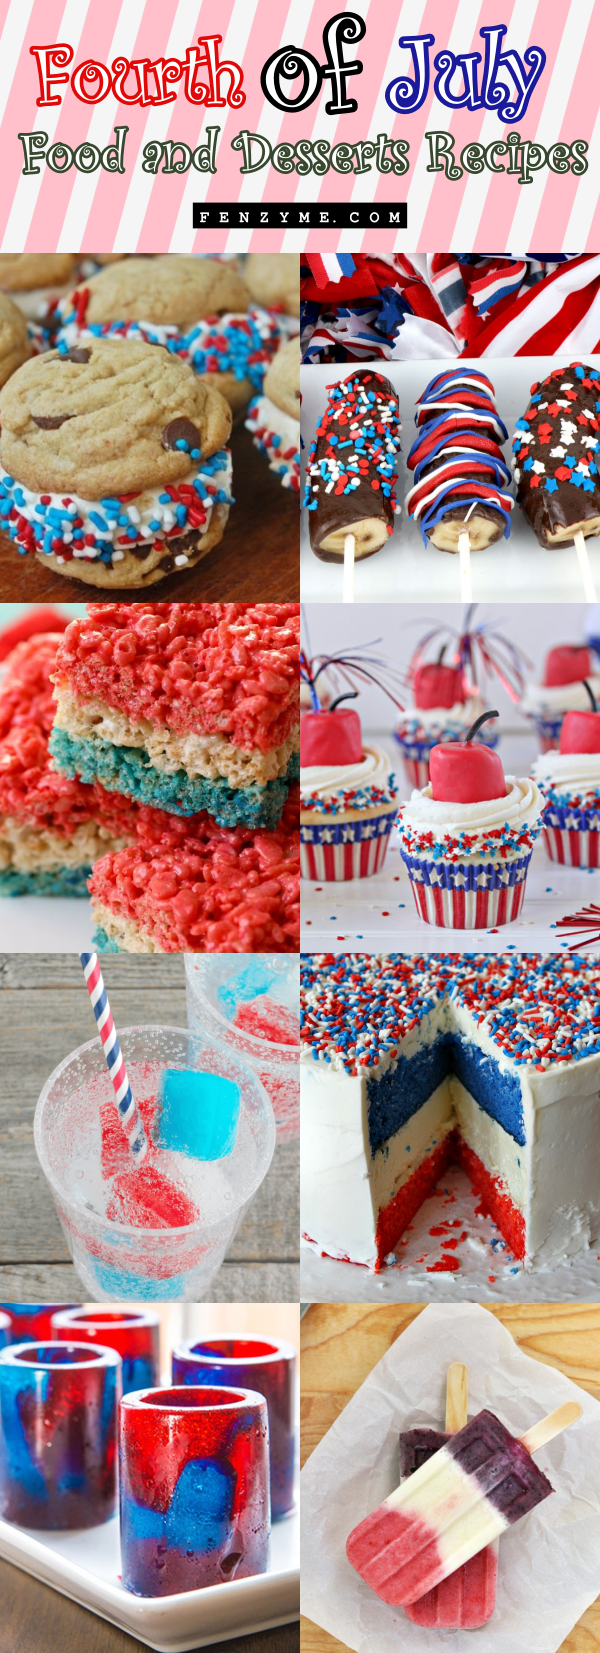 4th of July Food and Desserts Recipes1